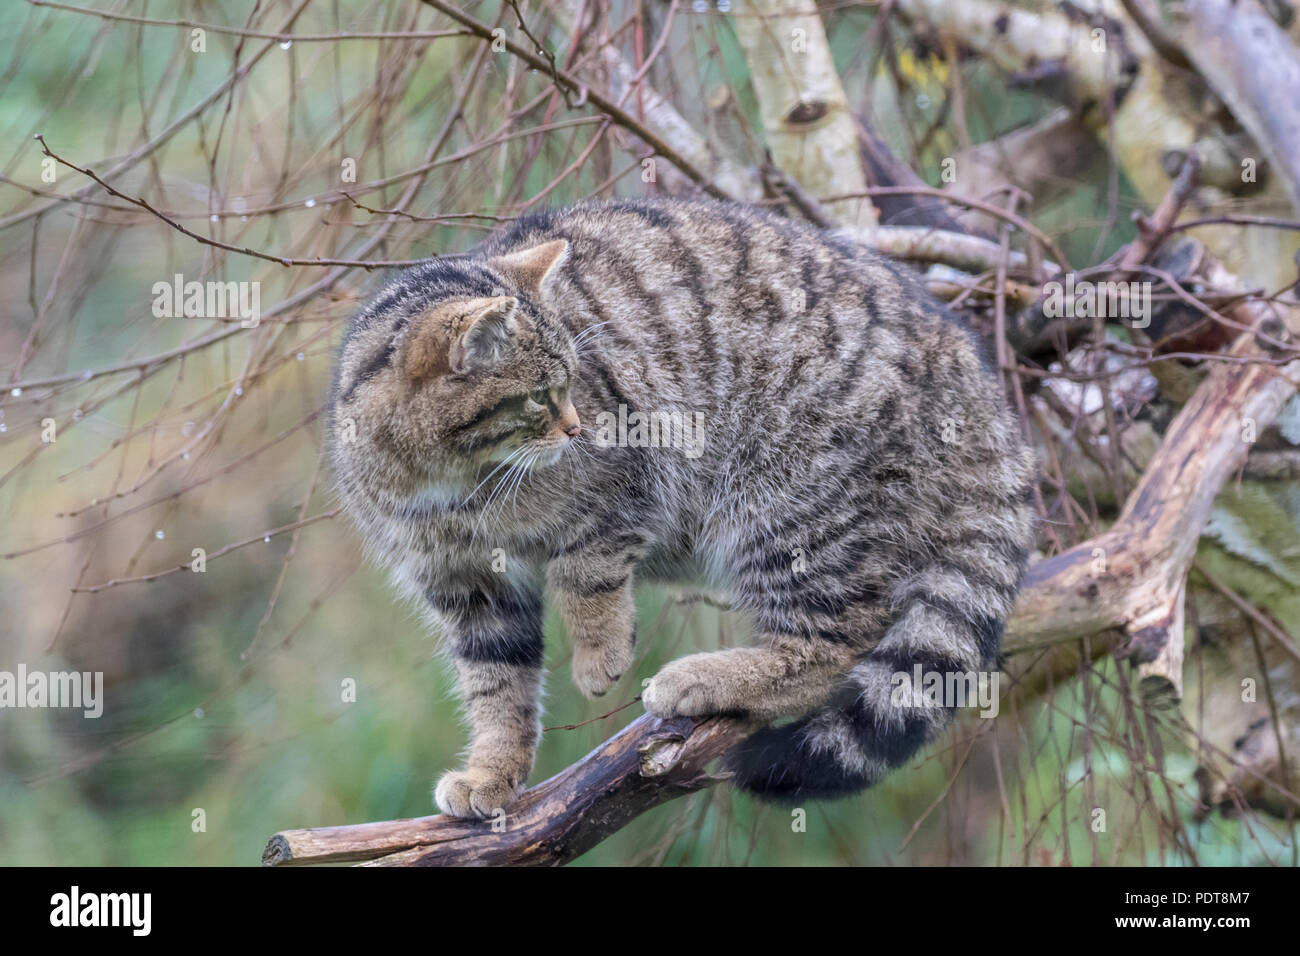 Scottish gato montés (Felis silvestris) o grampia Highland tiger Imagen De Stock